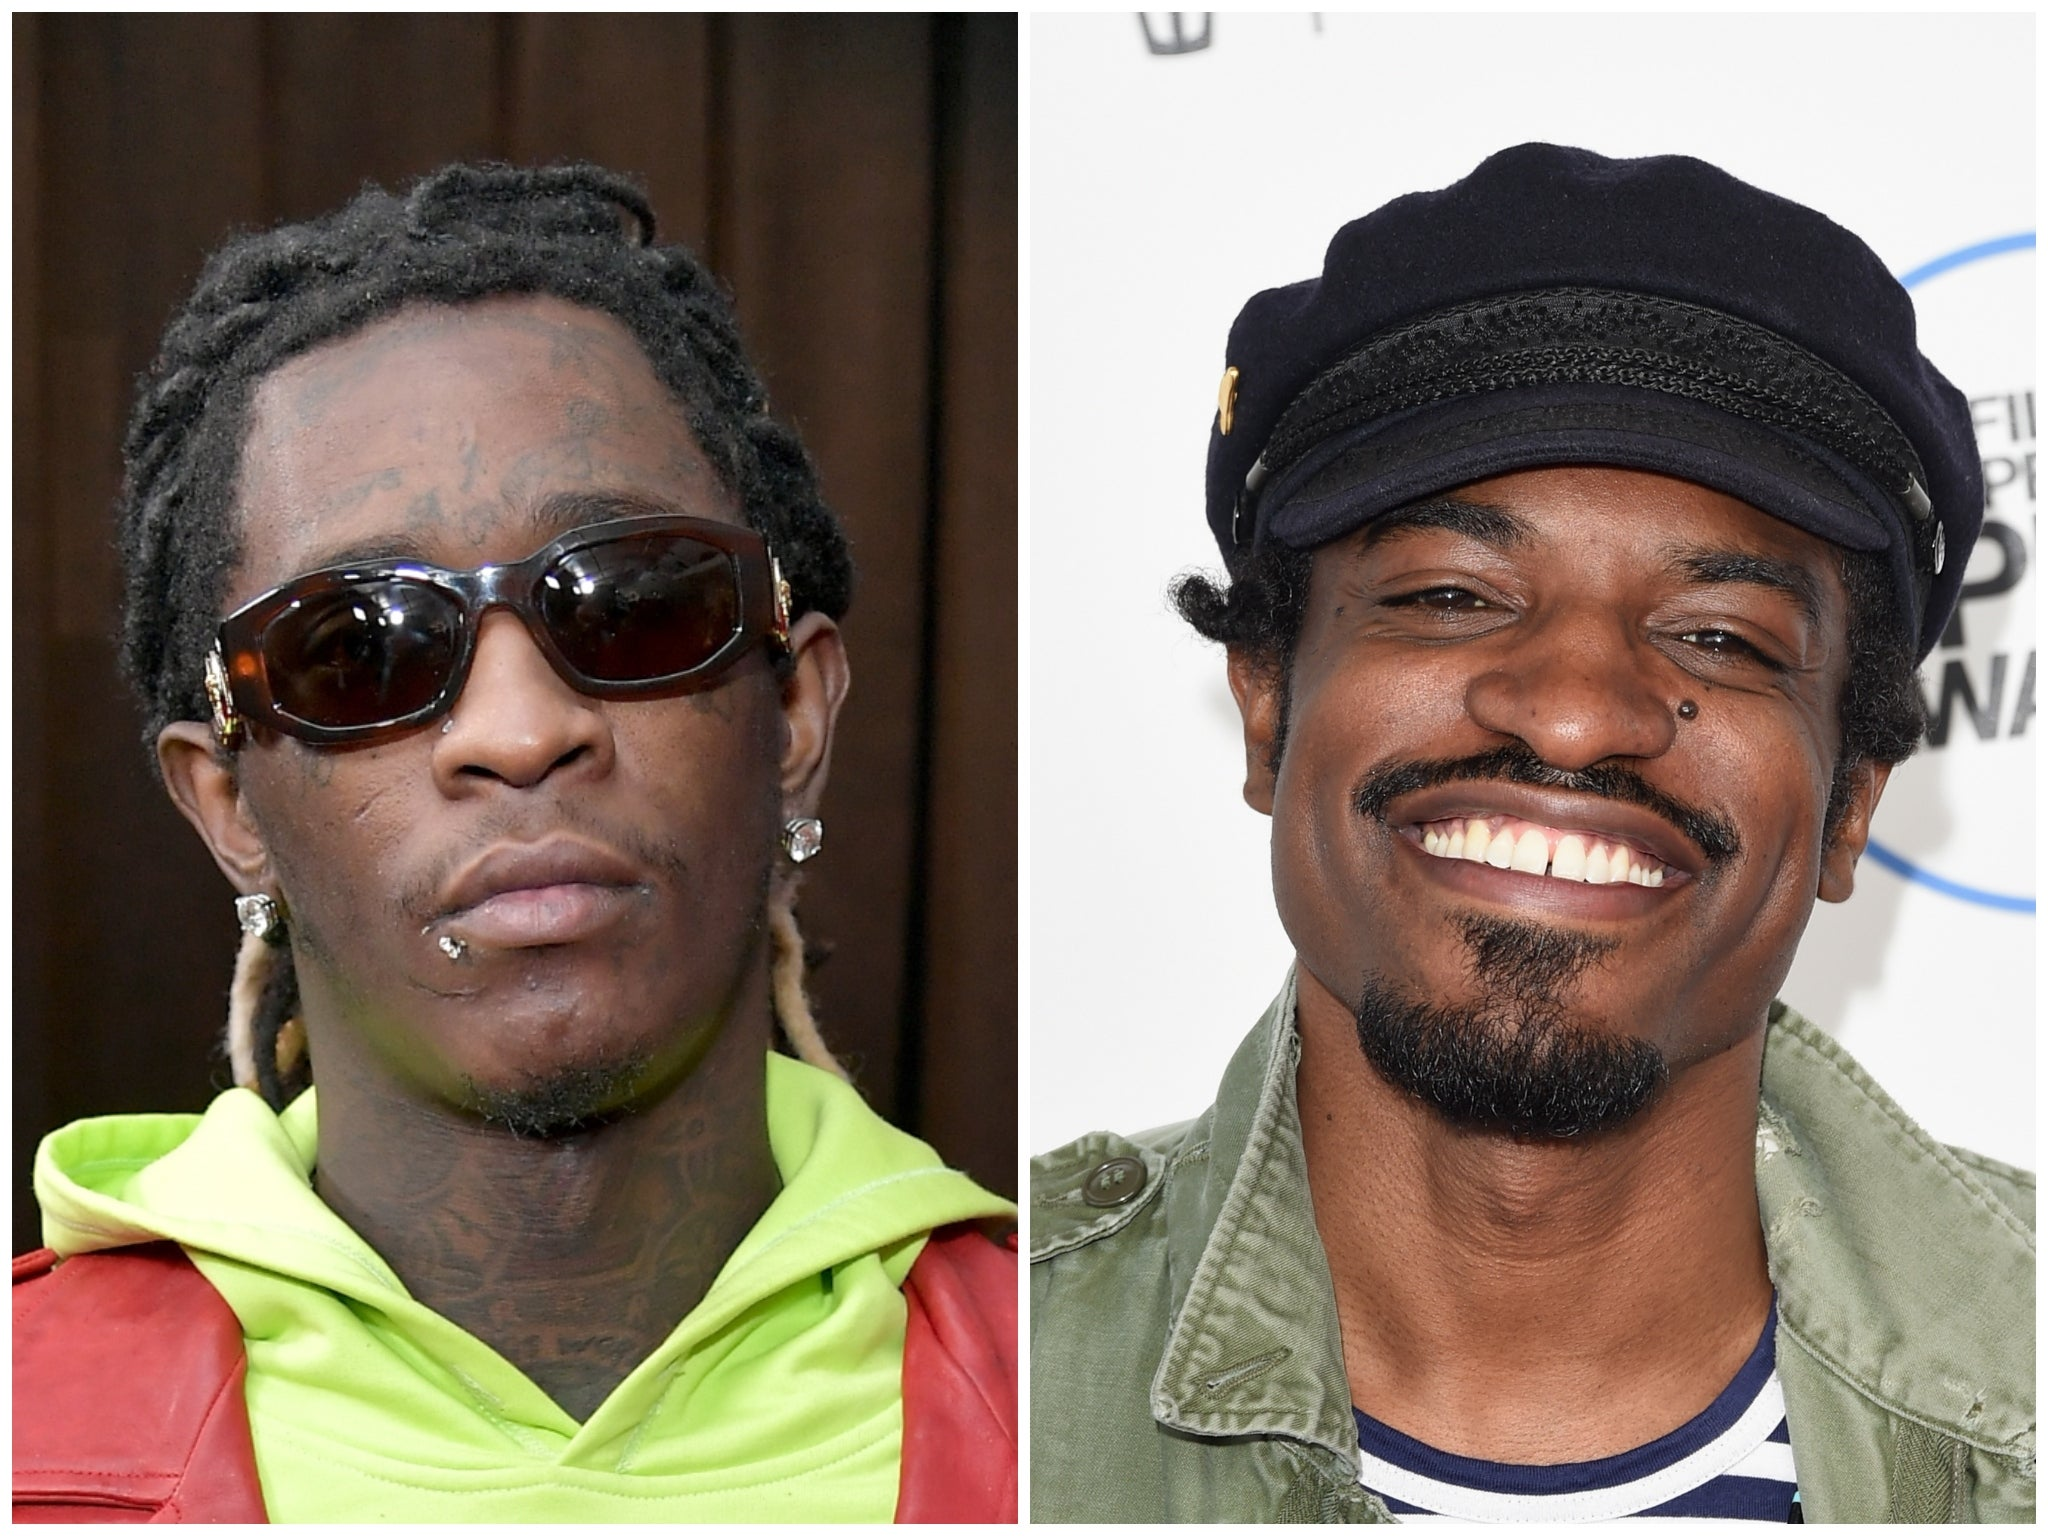 Young Thug criticises Andre 3000 – and hip-hop fans aren't happy - The Independent